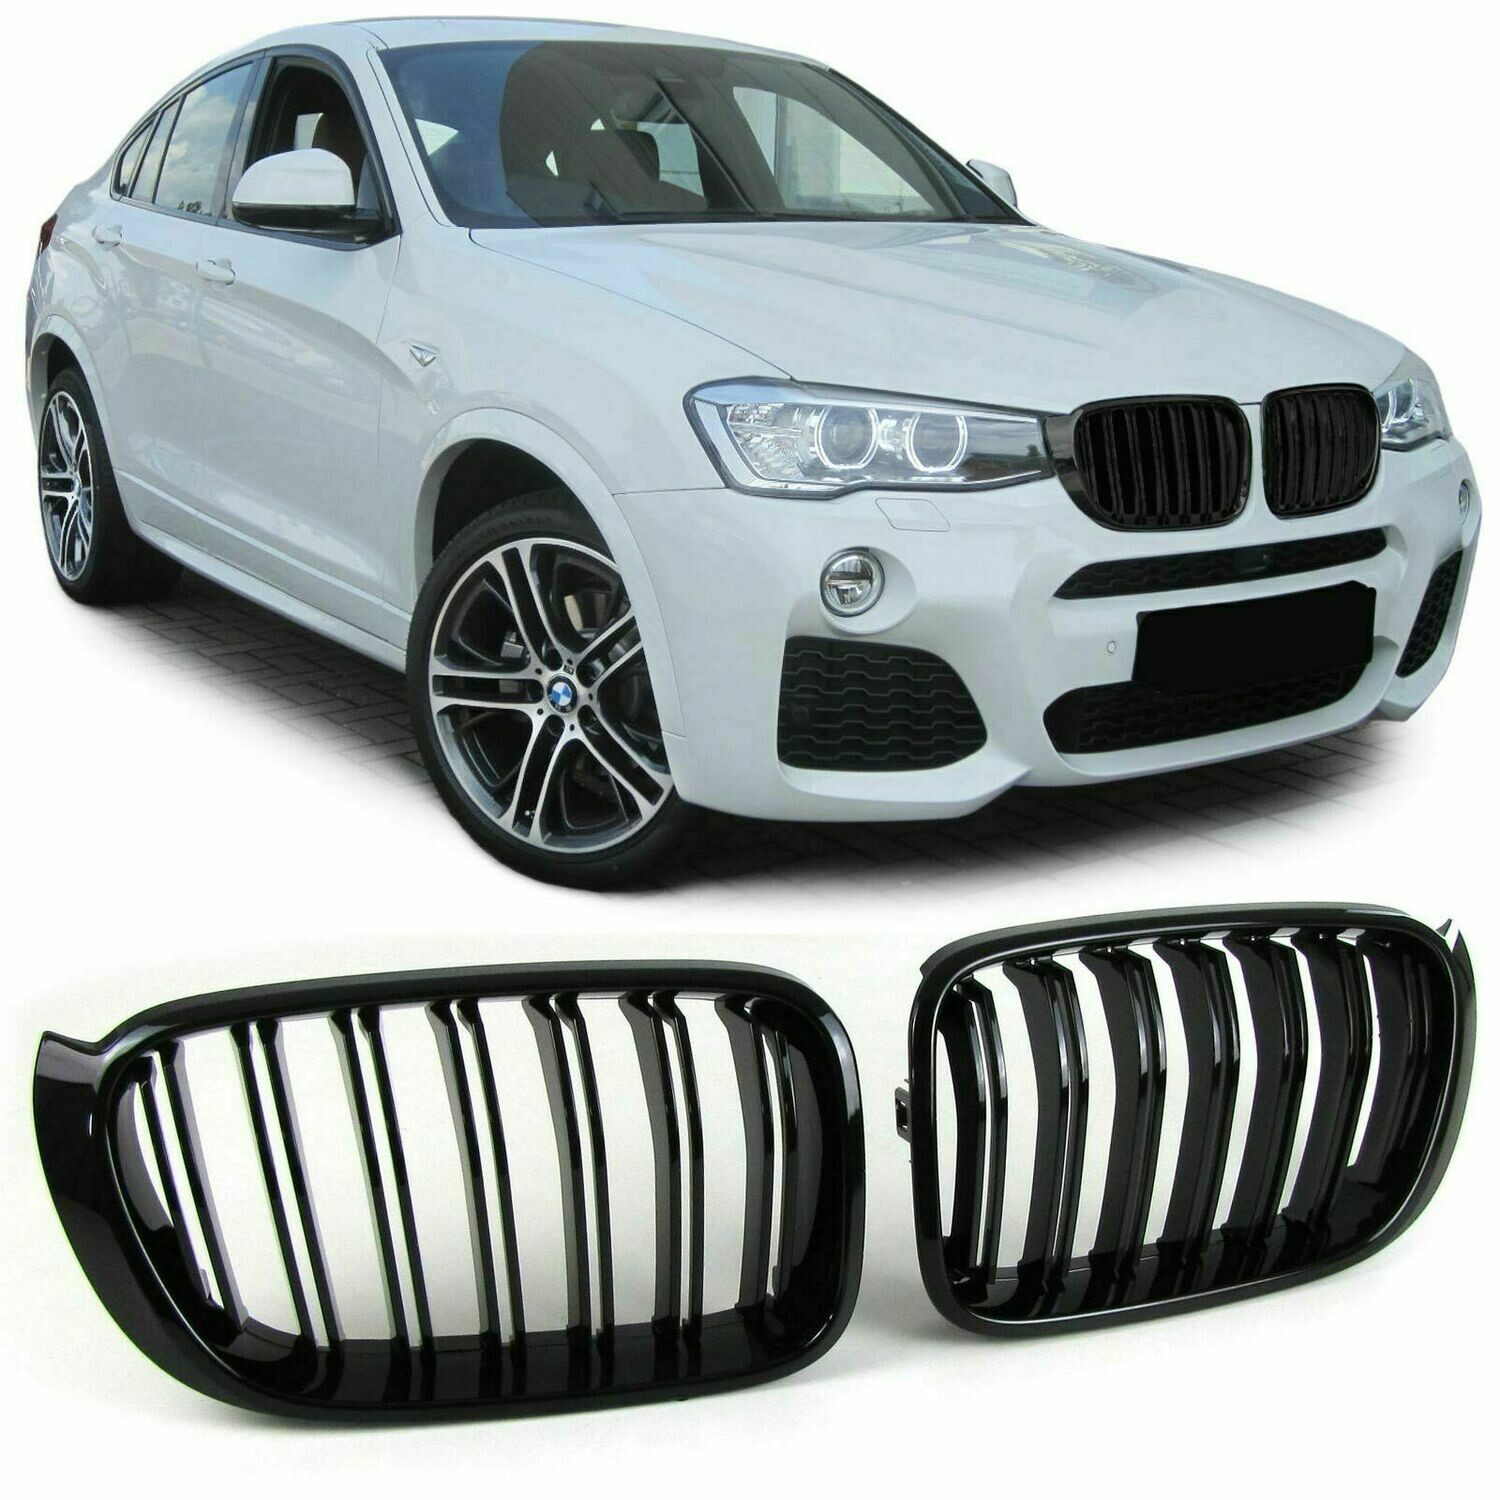 Sport Grill Black Gloss For Bmw X3 F25 X4 F26 2014 M Look Monster Tuning Parts Design Art Since 1997